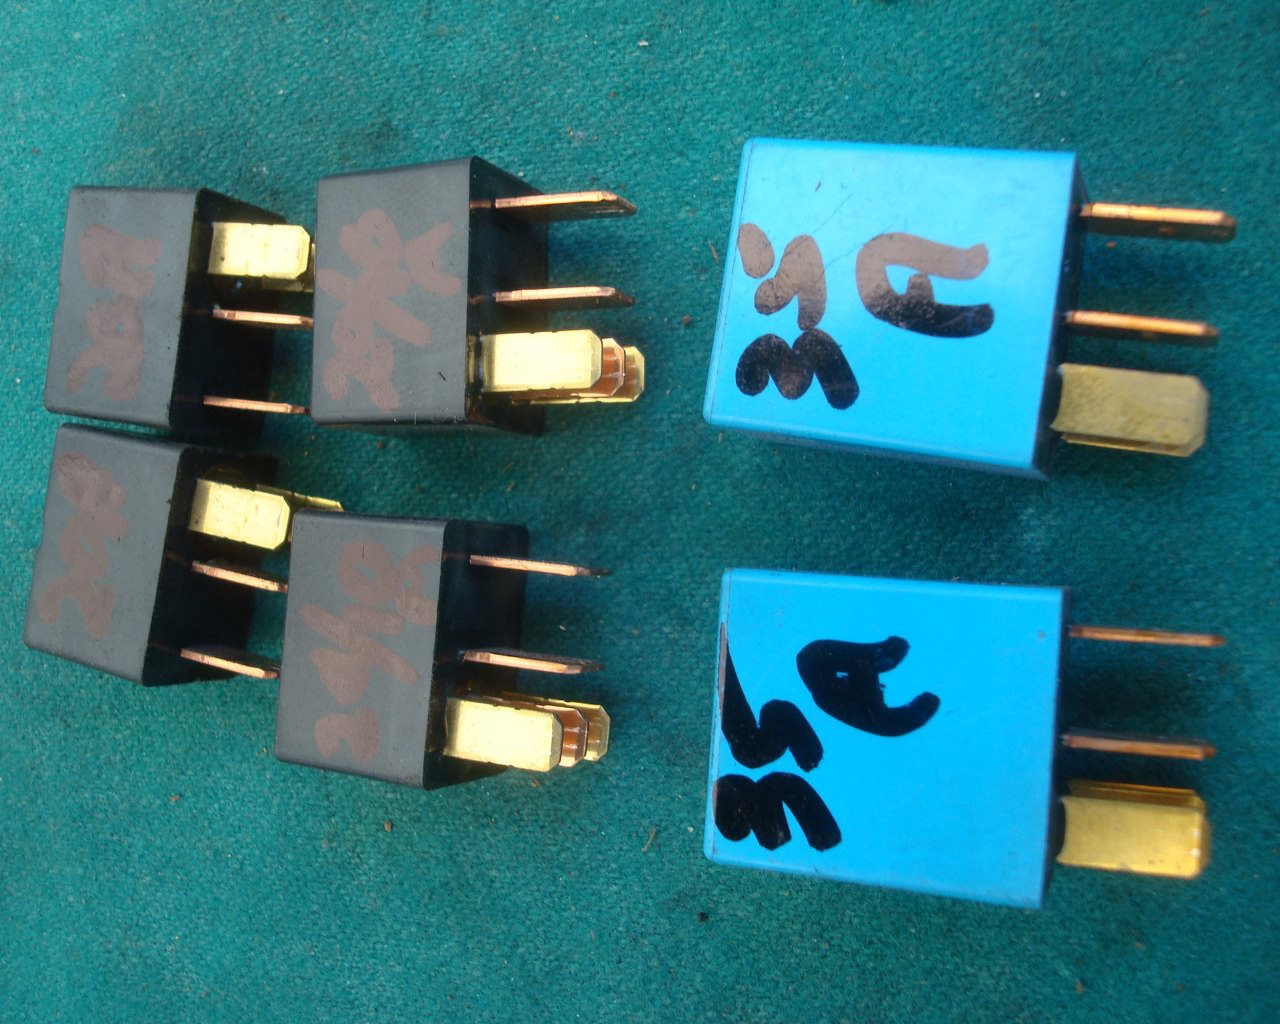 01 to 10 Main relays 20A, 20/10A, 35A GL1800